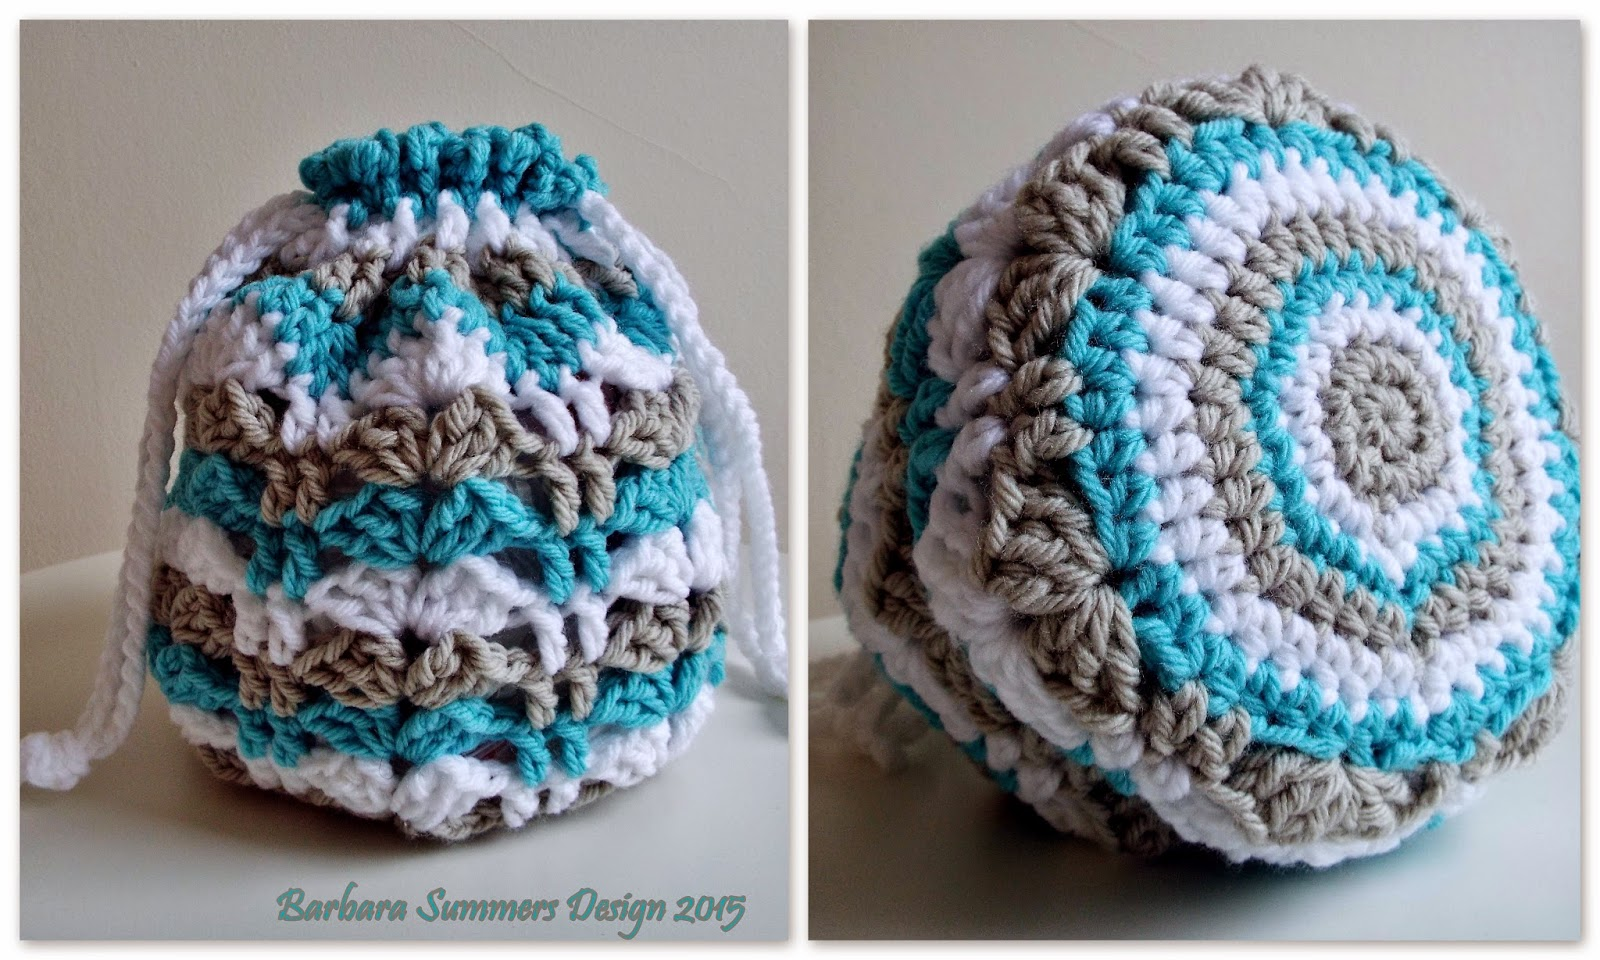 Microcknit Creations Cindy Crochet Drawstring Bag Free Pattern